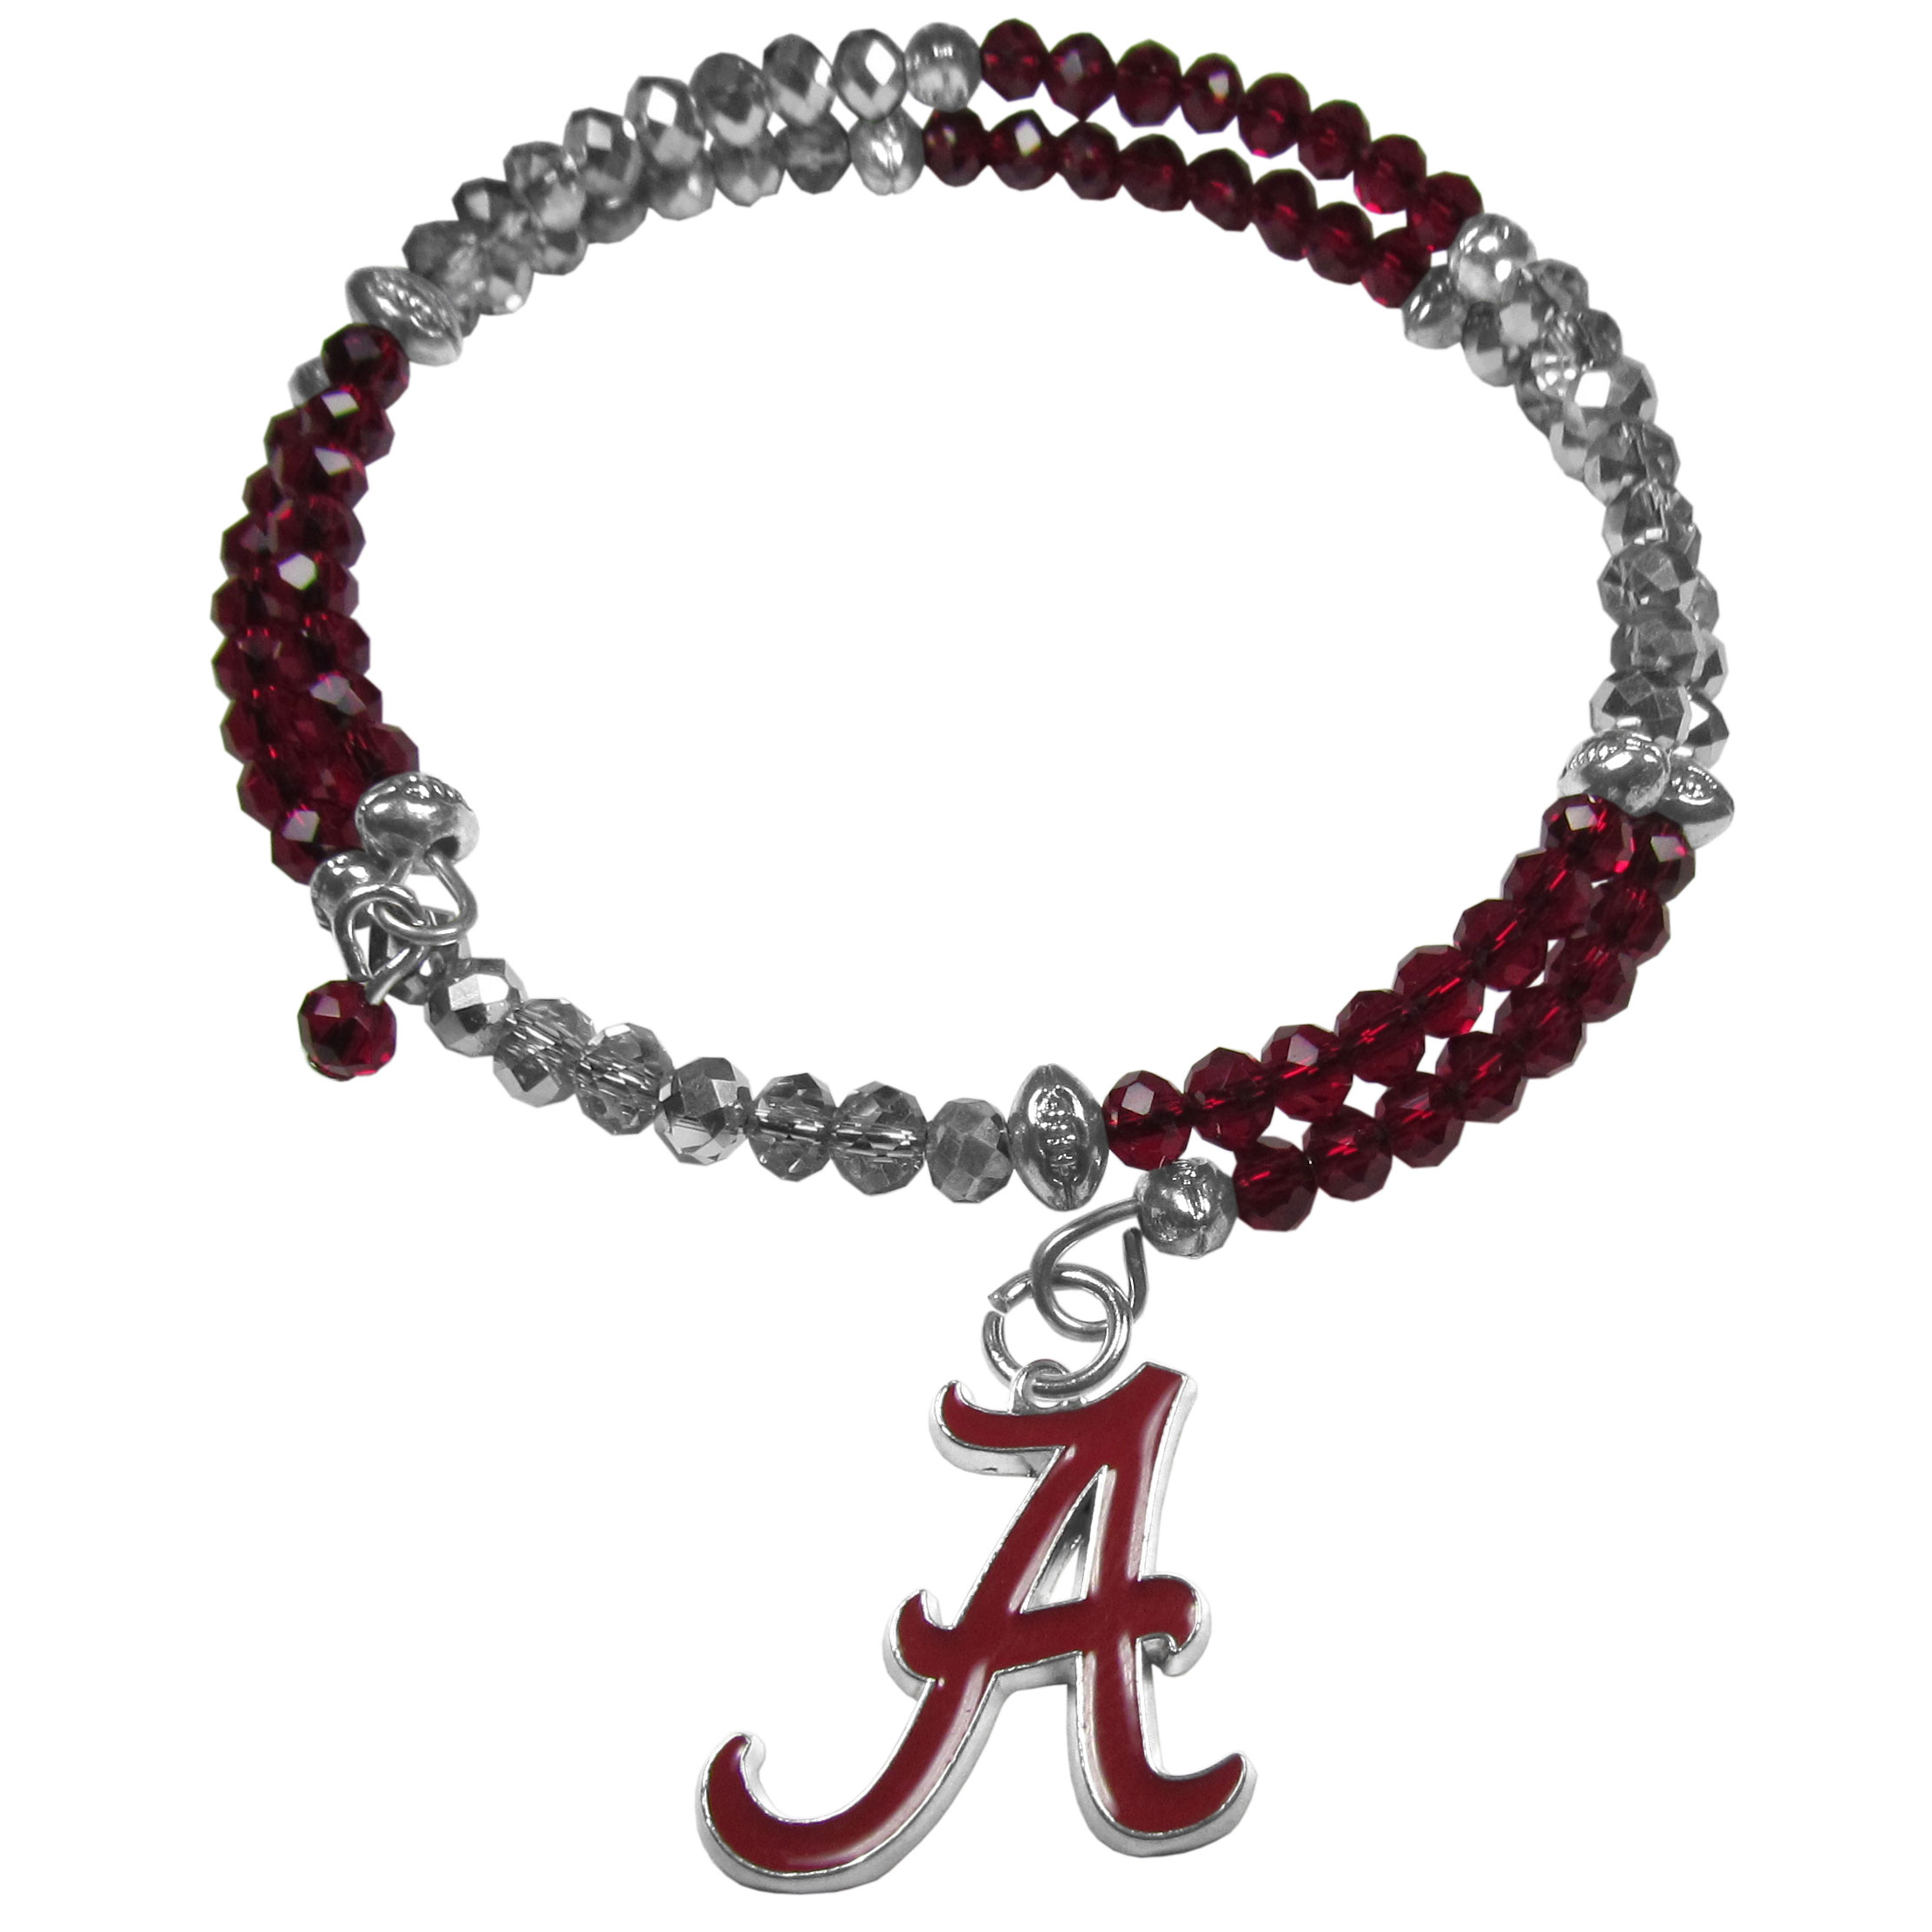 Alabama Crimson Tide Crystal Memory Wire Bracelet - Our Alabama Crimson Tide memory wire crystal bracelet is trendy way to show off your love of the game. The double wrap bracelet is completely covered in 4 mm crystals that are broken up with adorable football beads creating a designer look with a sporty twist. The bracelet features a fully cast, metal team charm that has expertly enameled team colors. This fashion jewelry piece is a must-have for the die-hard fan that chic look that can dress up any outfit.